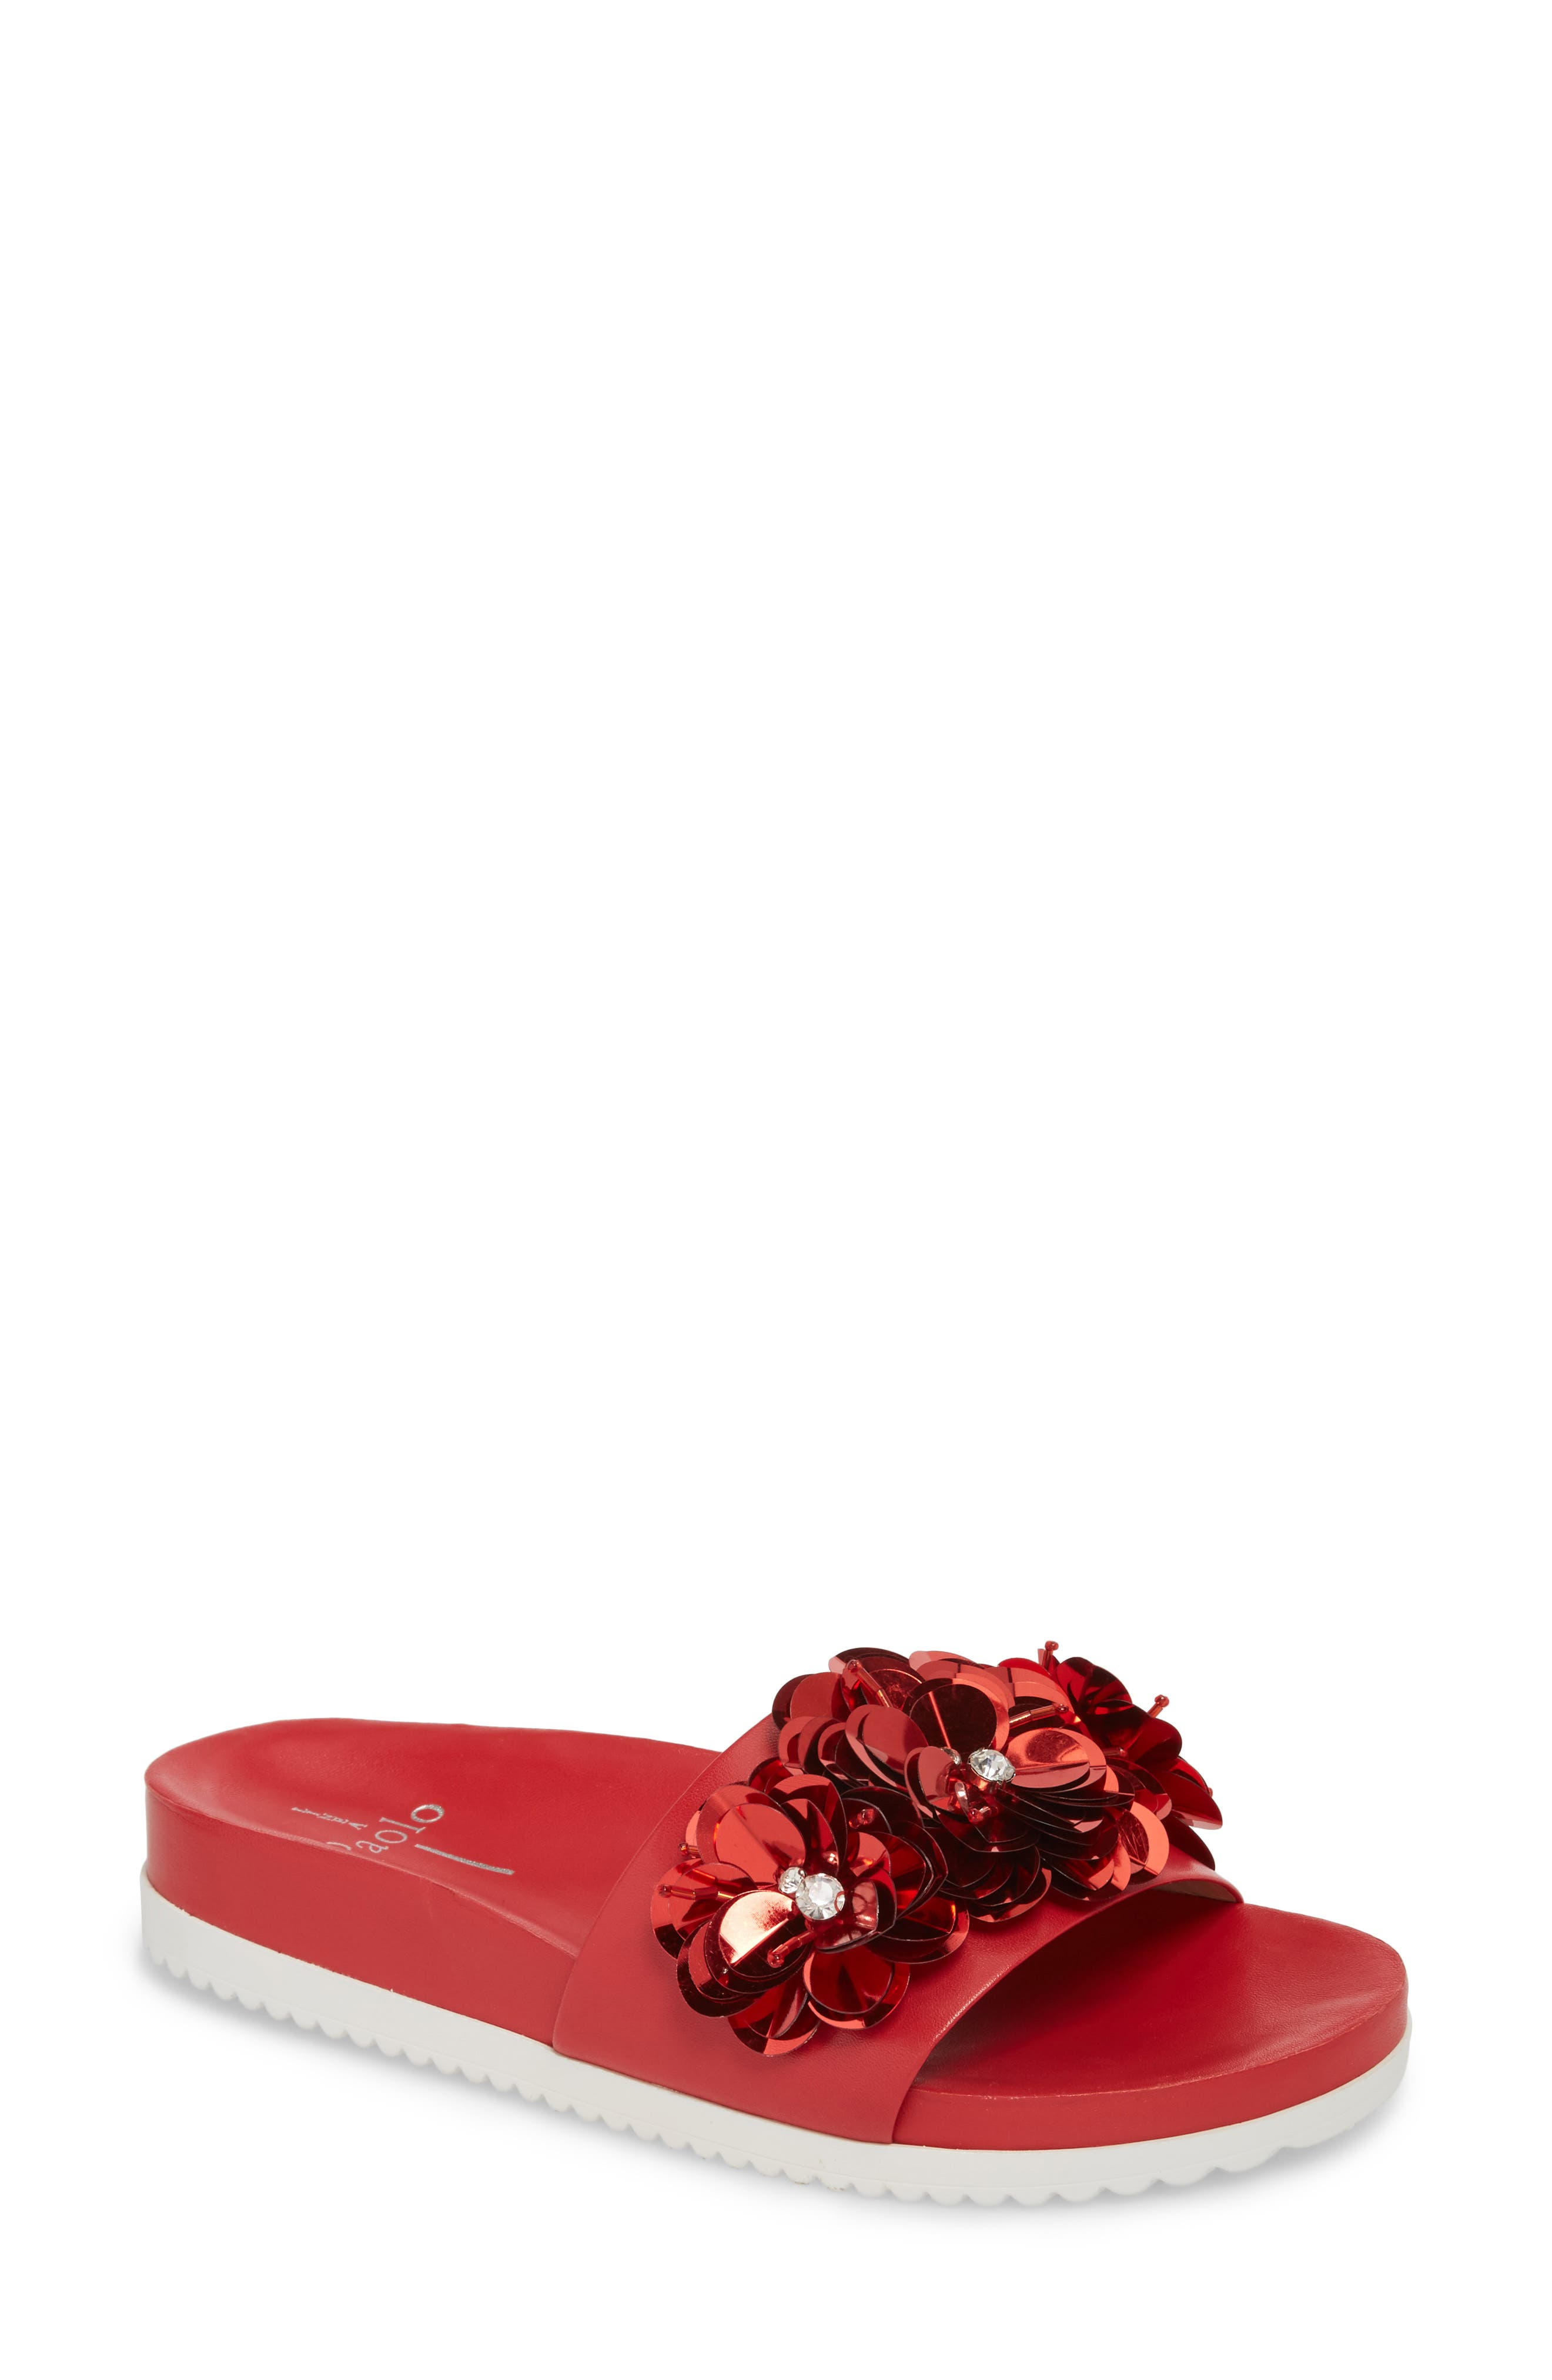 Lotus Embellished Flower Sandal Slide,                             Main thumbnail 1, color,                             Red Fabric